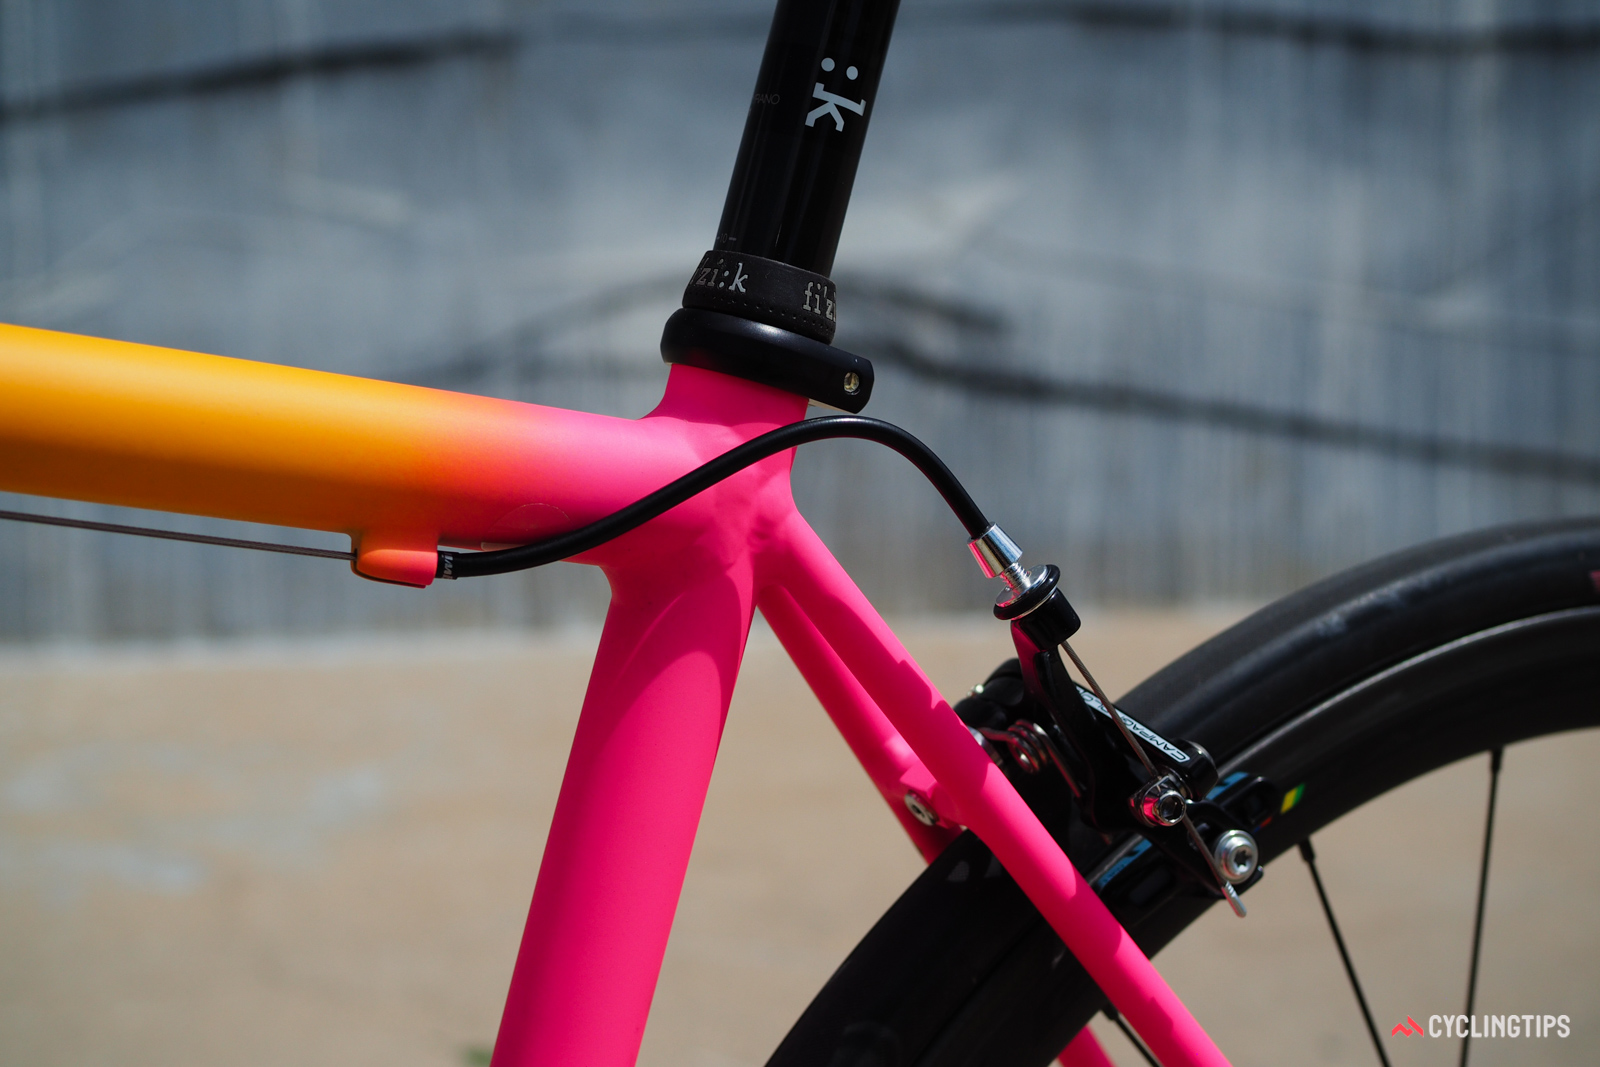 Cable routing is simple and purposeful.